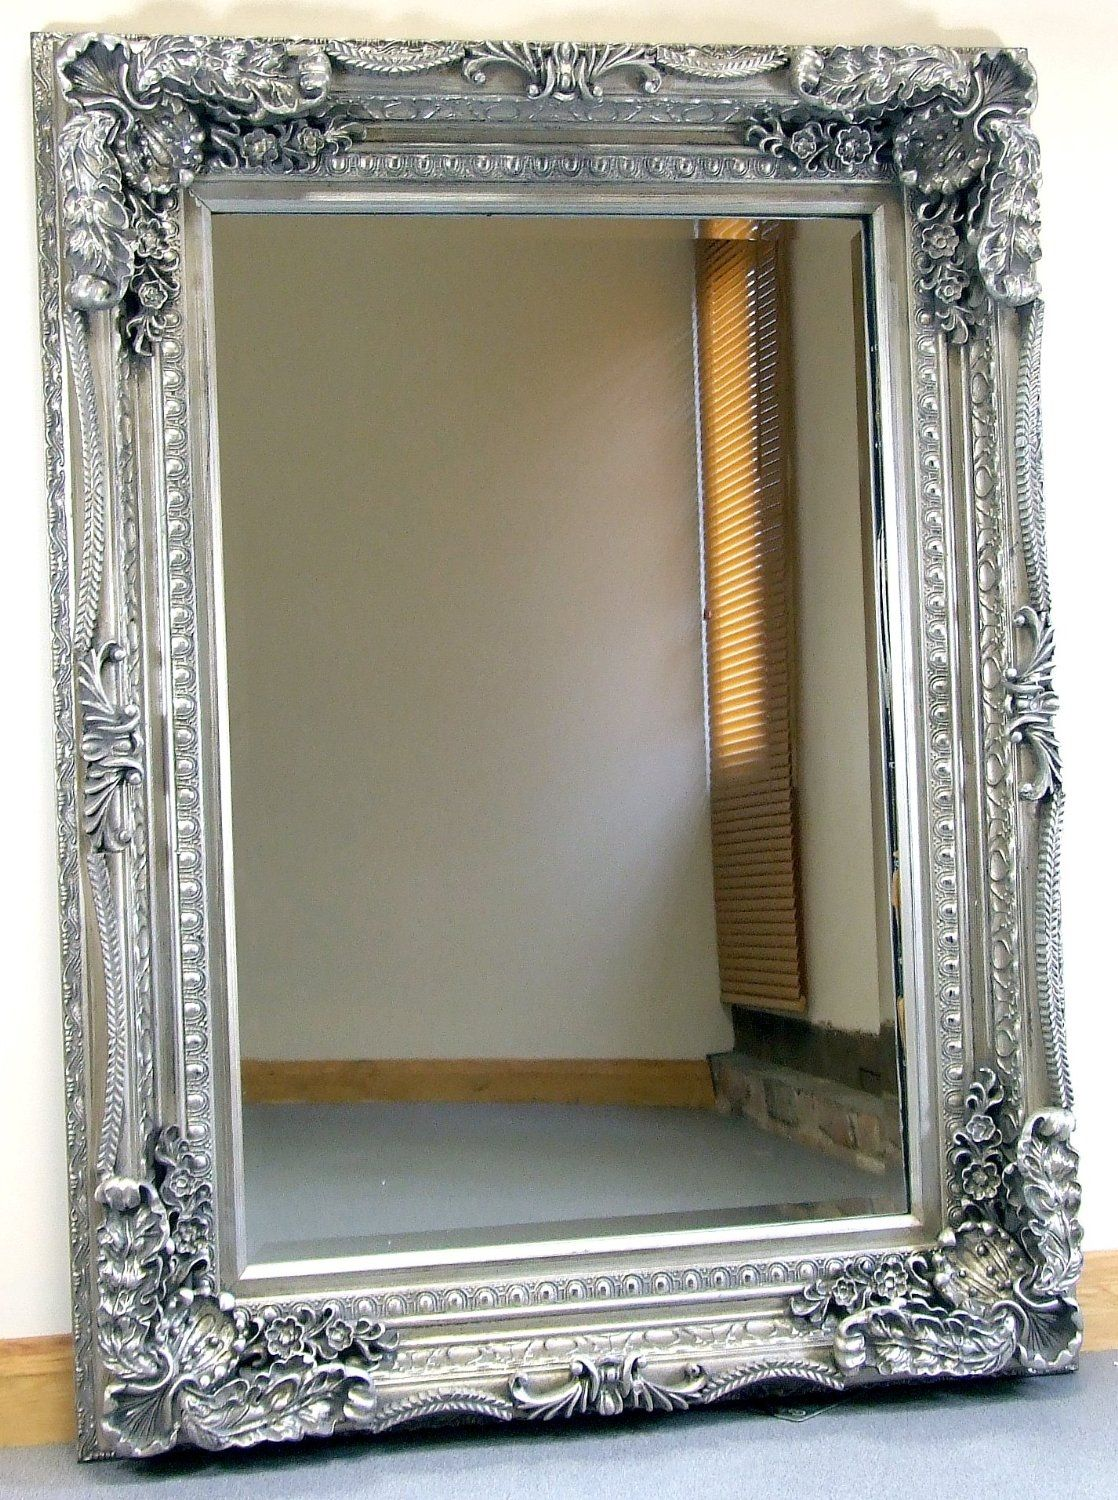 Carved Ornate Framed Silver Wall Mirror Silver Wall Mirror Silver Mirrors Mirror Wall [ 1500 x 1118 Pixel ]